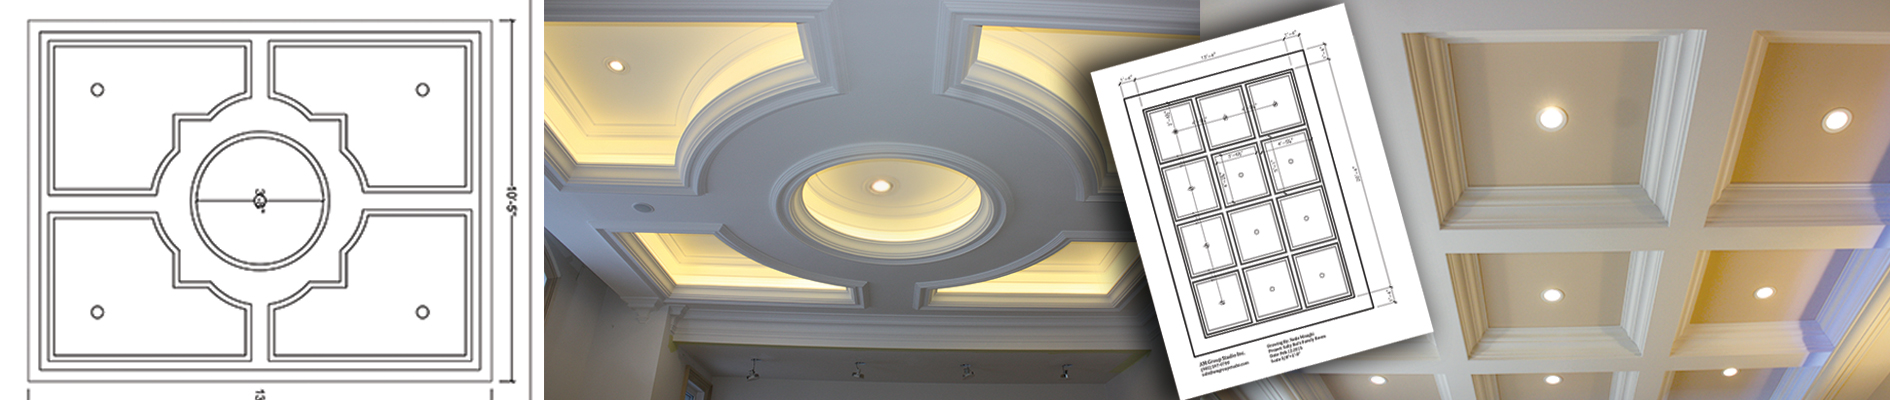 from cornices, to columns, to medallions and fireplace mantels are manufactured in our well-equipped workshop